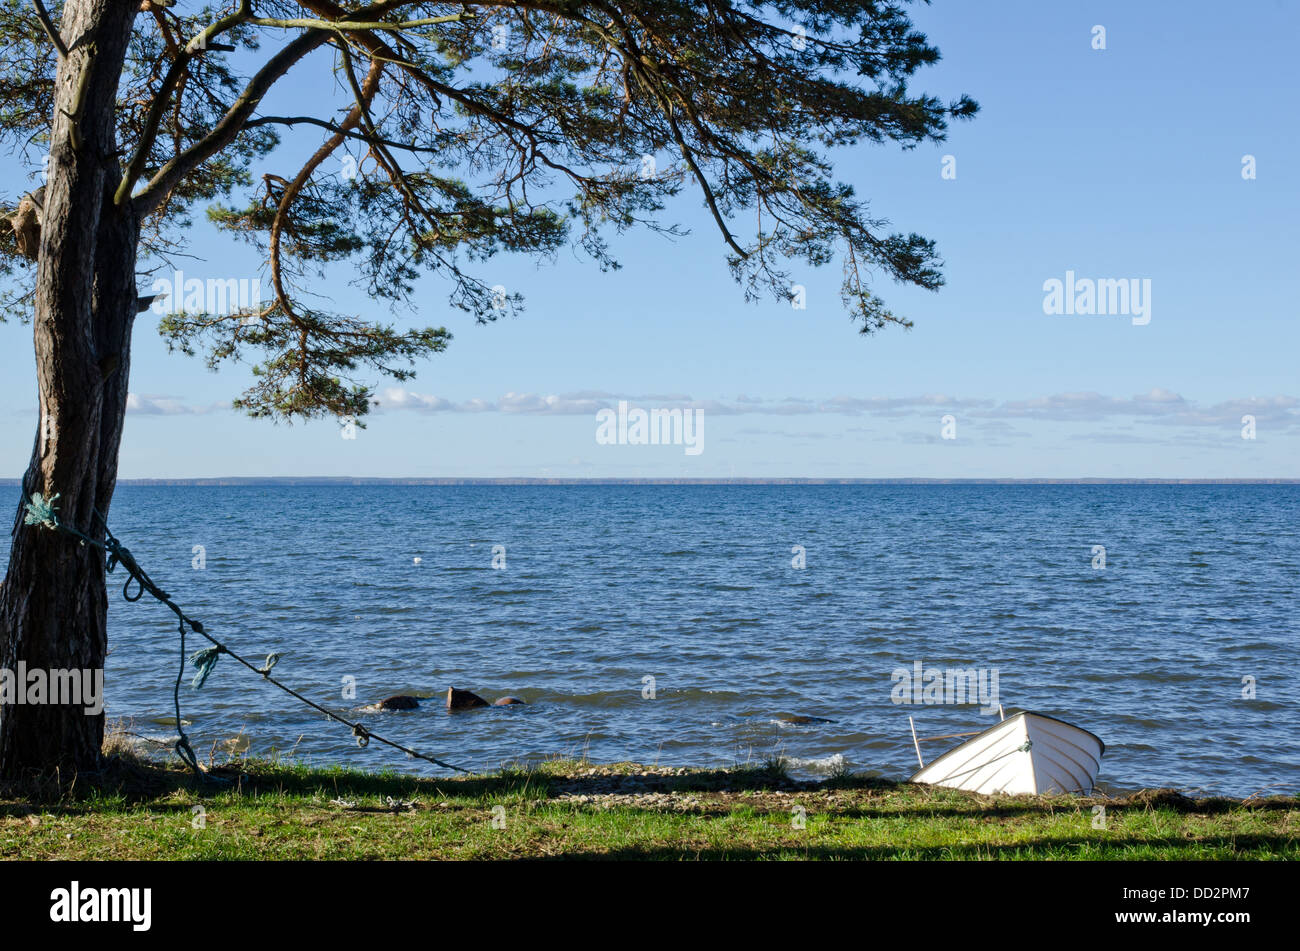 White rowing boat tied up at coast - Stock Image